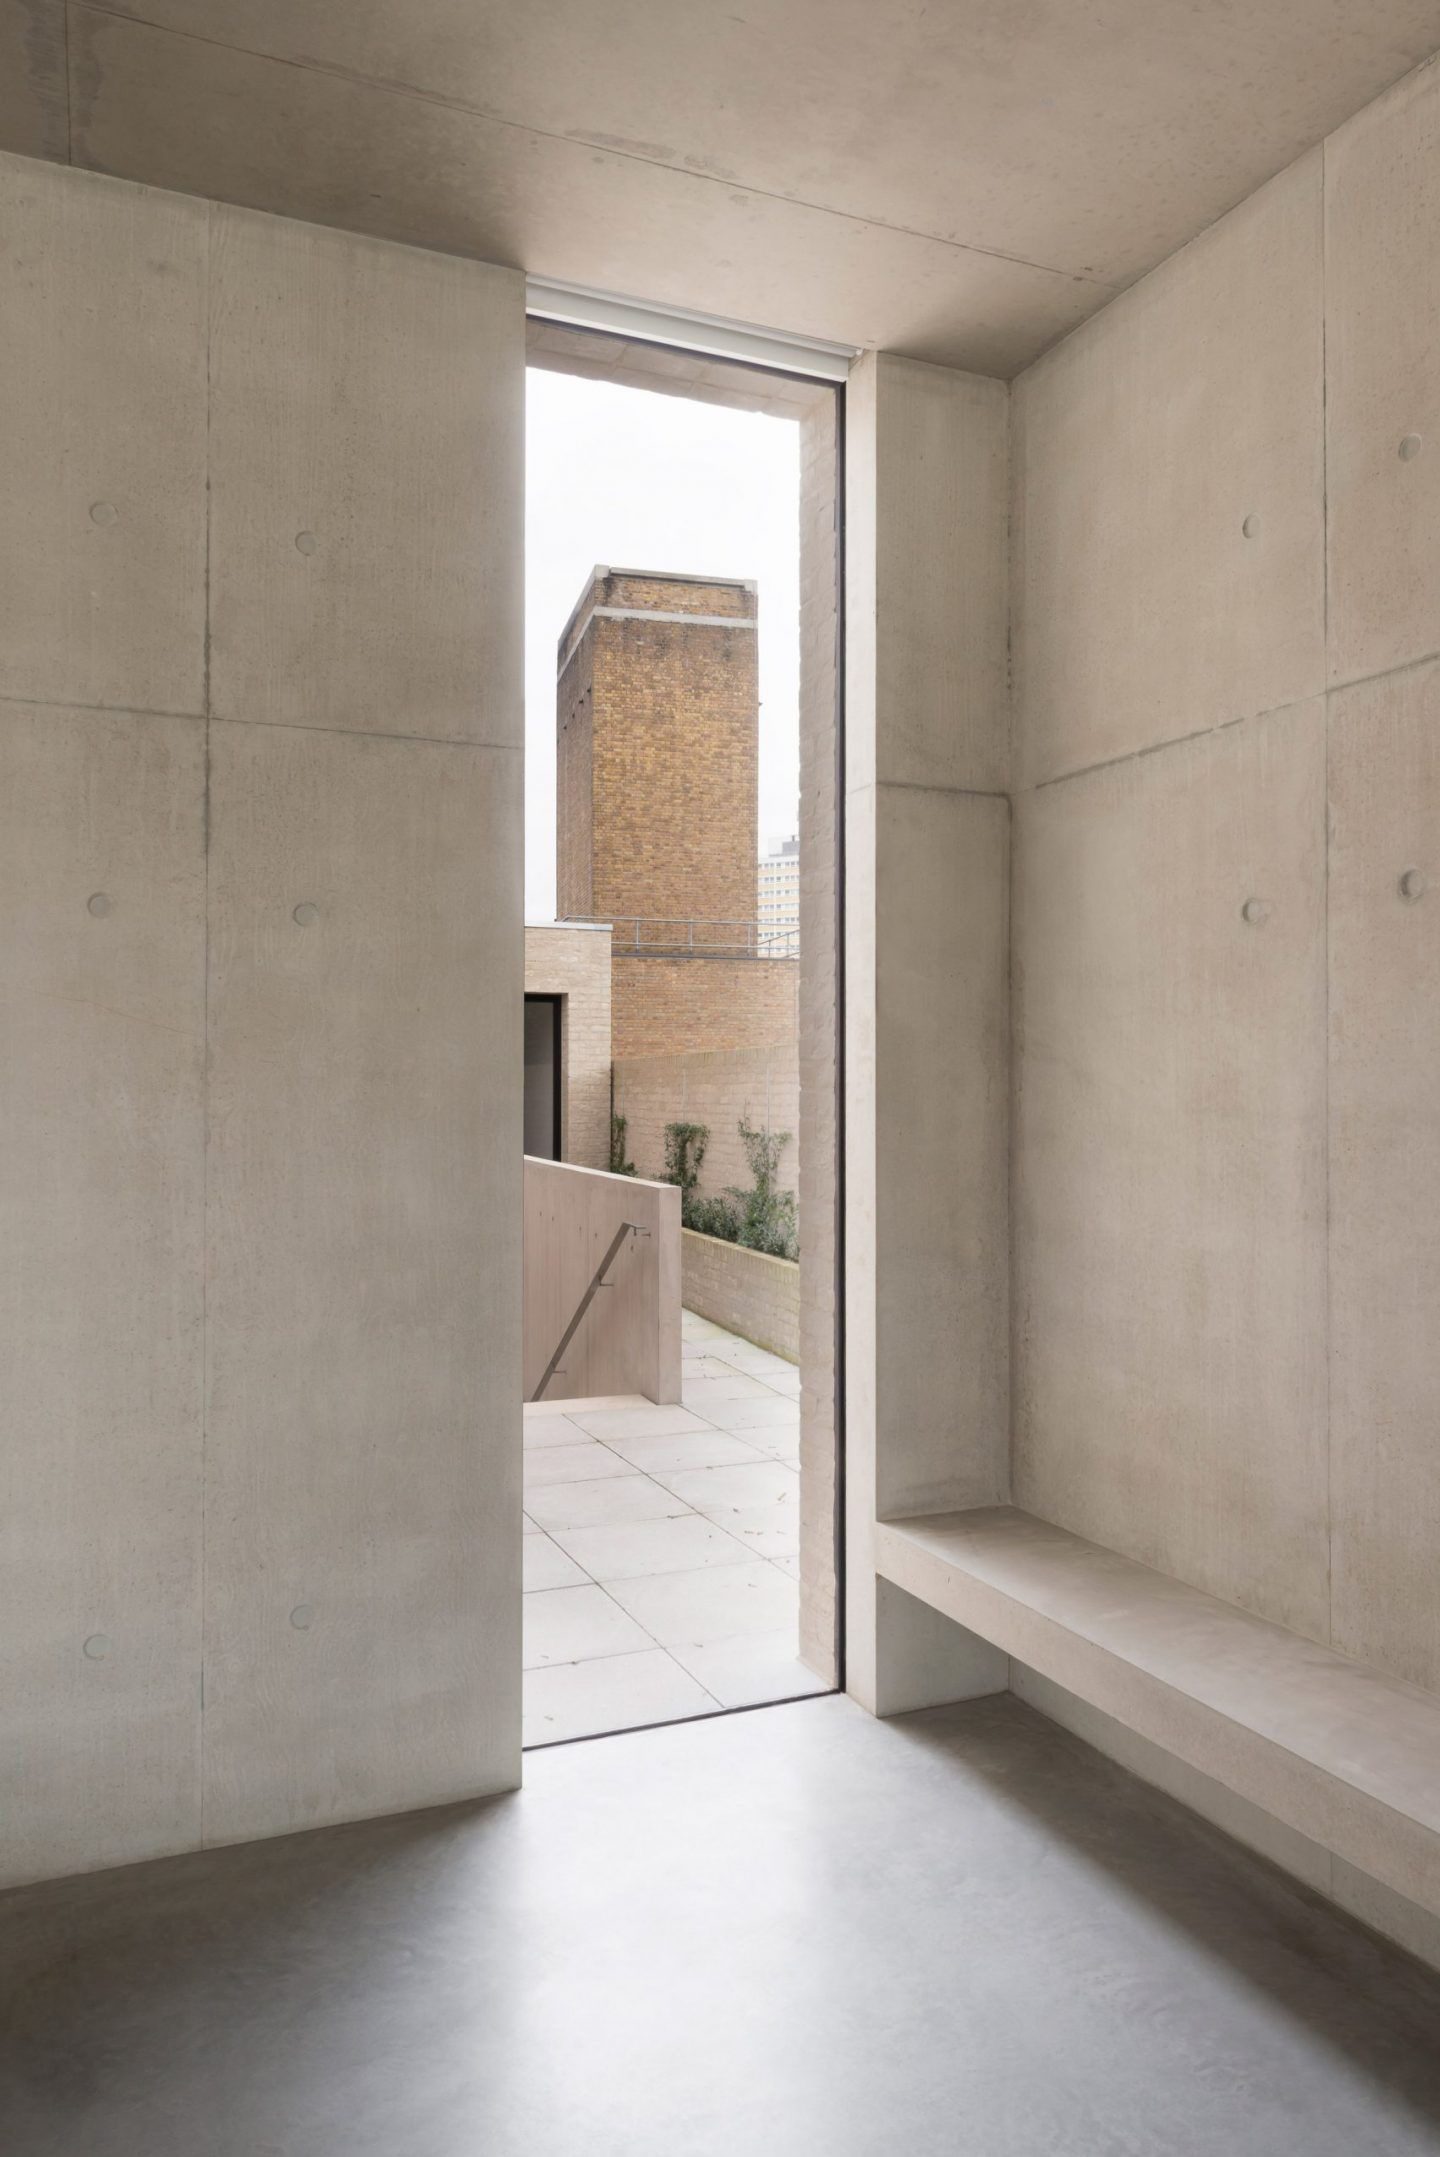 Sunday Sanctuary, Concrete, Minimal, Interior, space, concrete